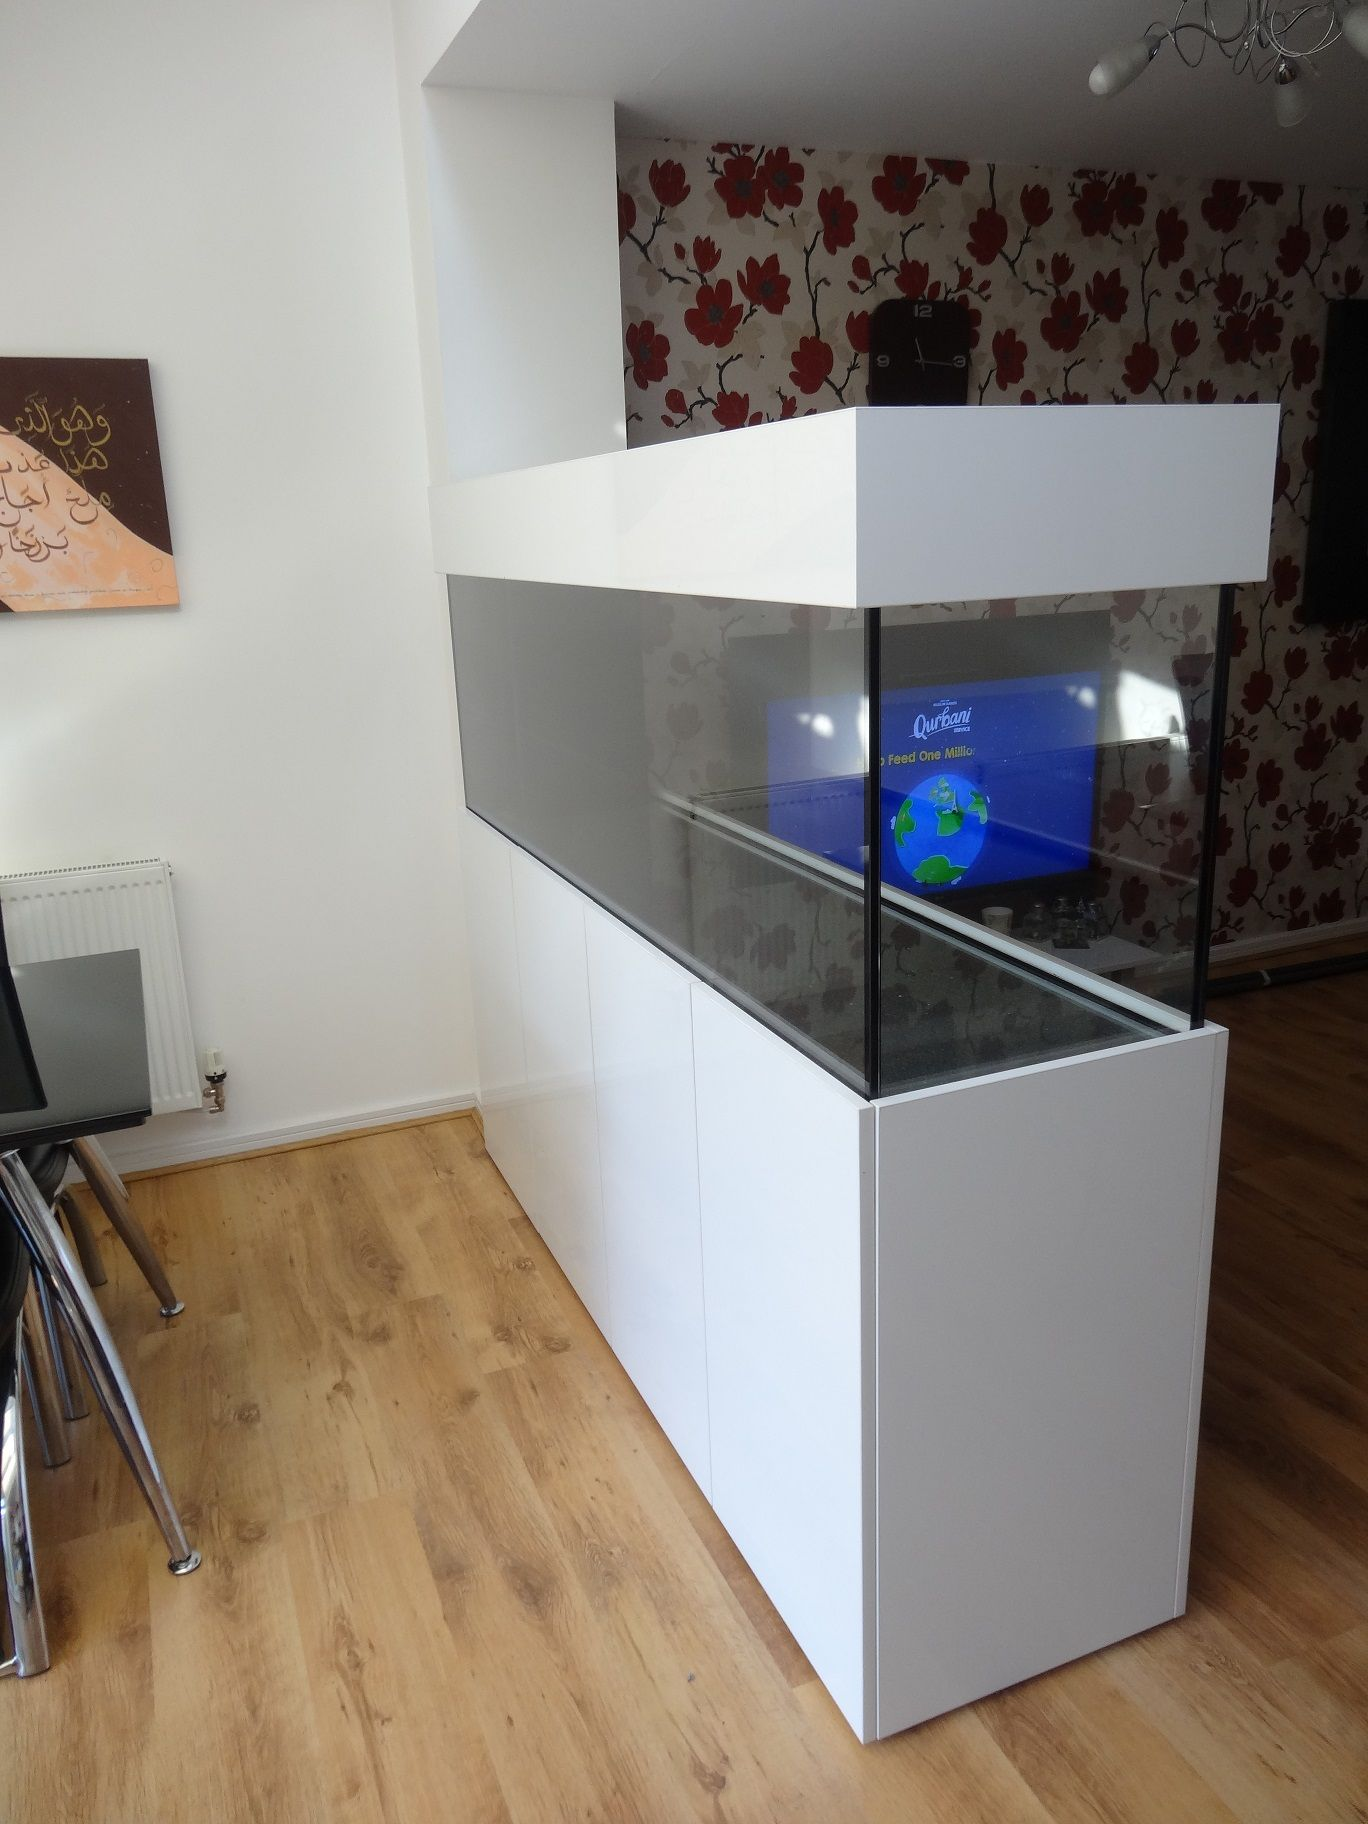 Room divider tank 72x24x18 from Prime Aquariums Lower Use as a bar